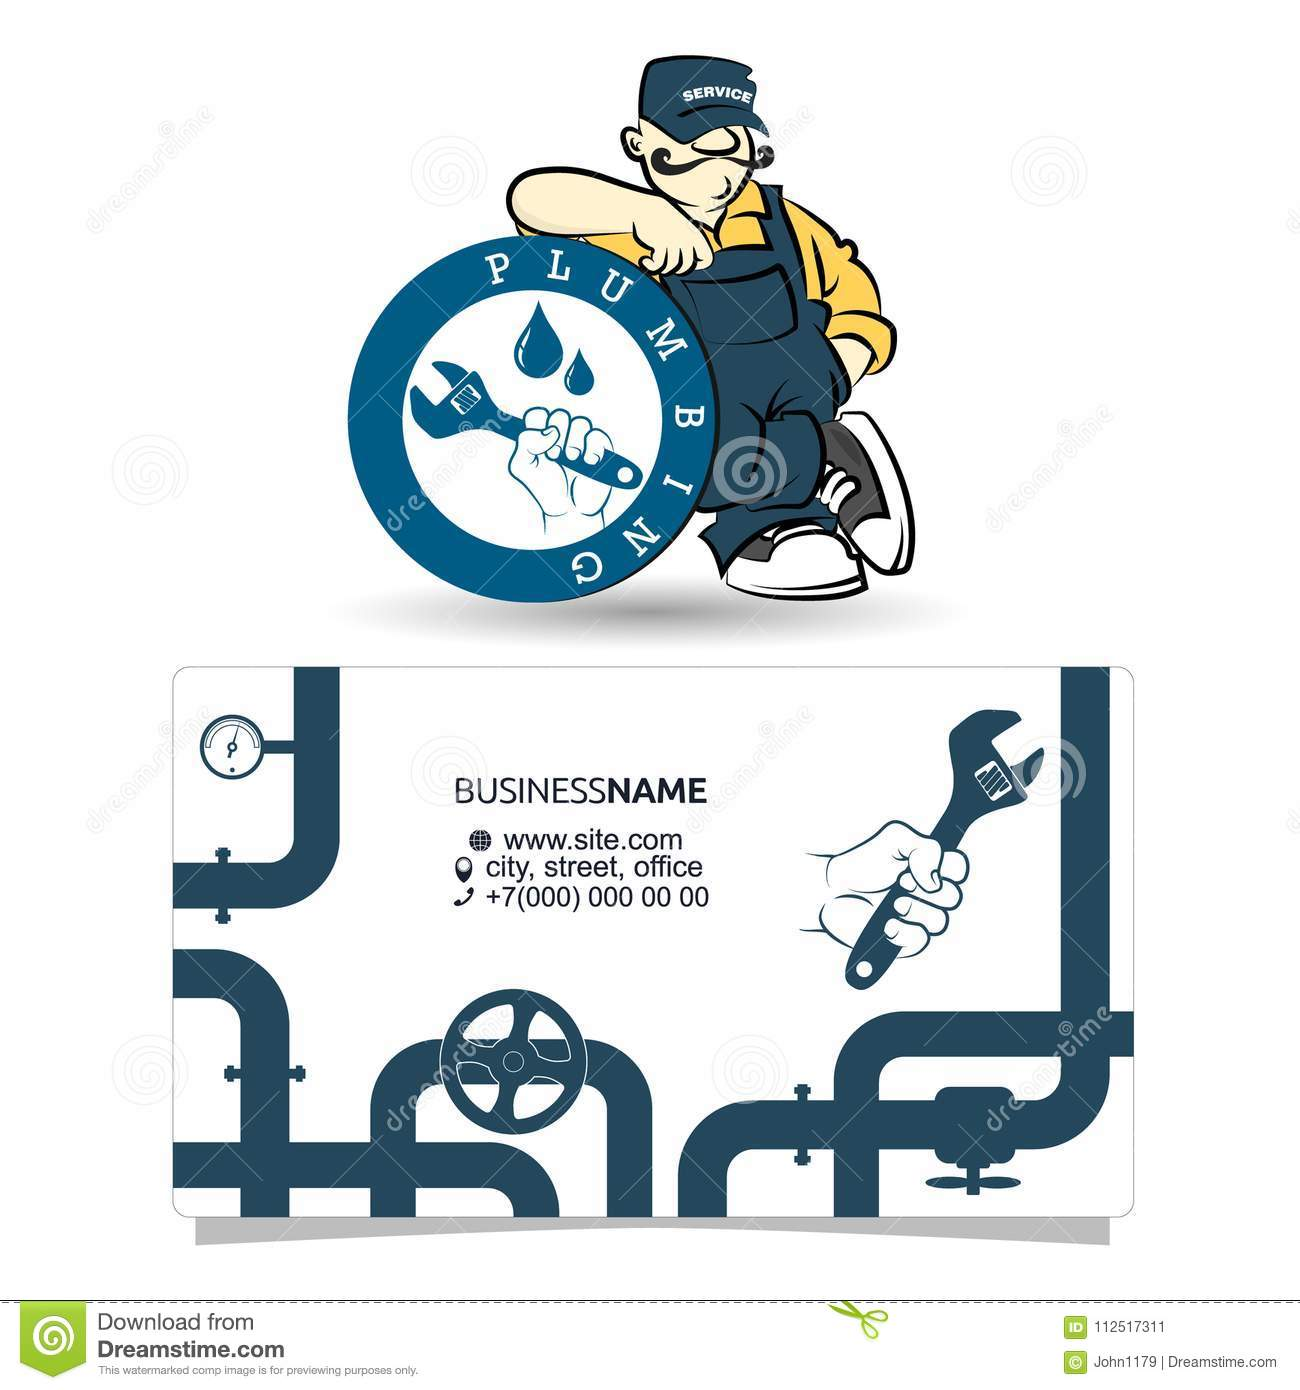 Plumbing Business Card Concept Stock Vector Illustration Of Master